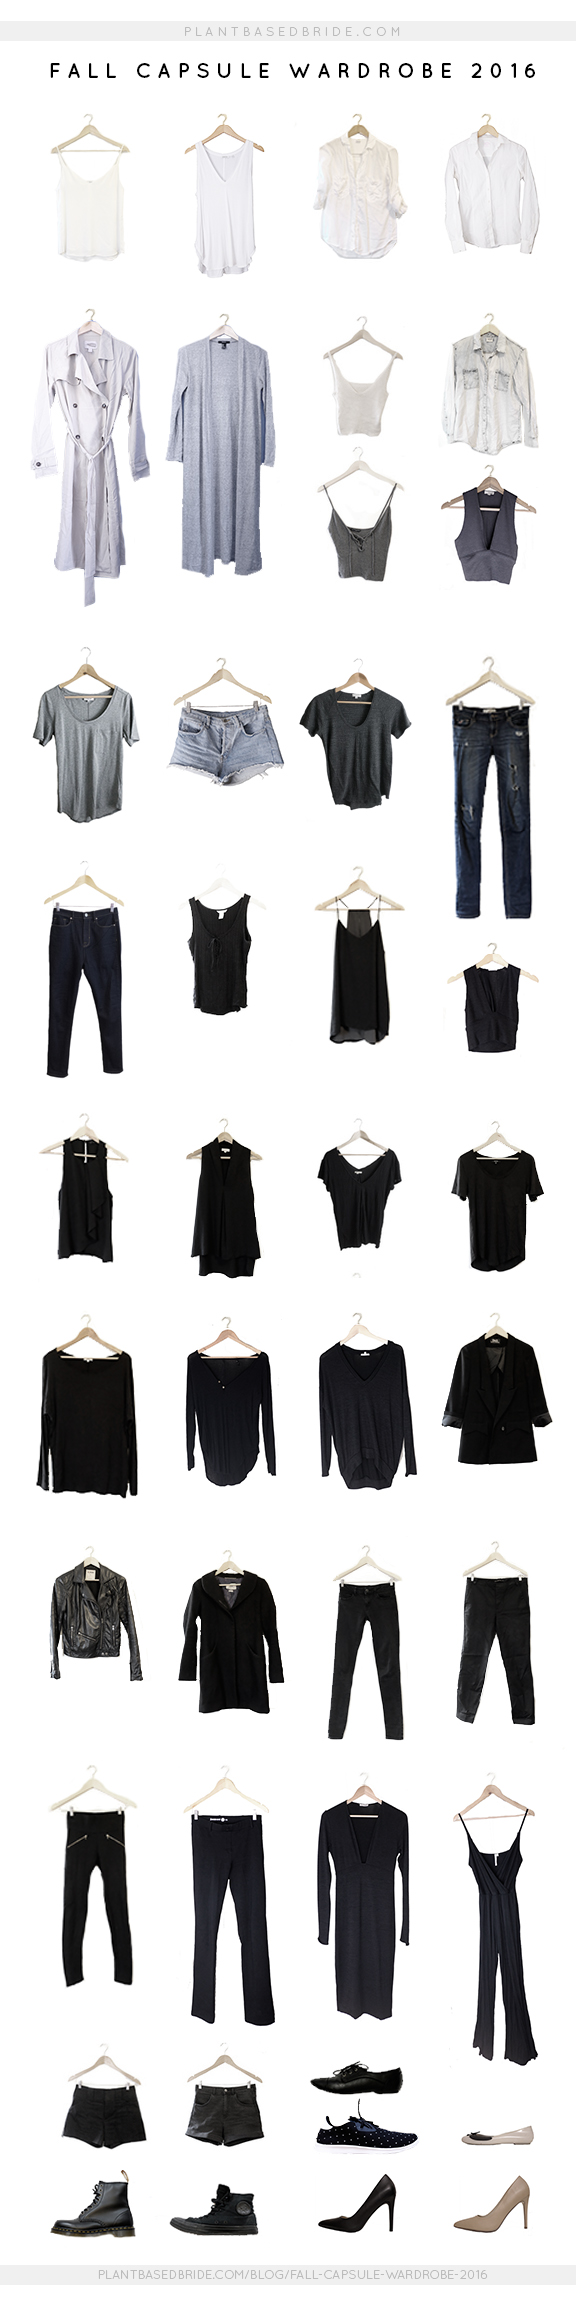 My 2016 Fall Capsule Wardrobe is ready!  This time around I talk you through my process and go into detail about each piece. // Plant Based Bride